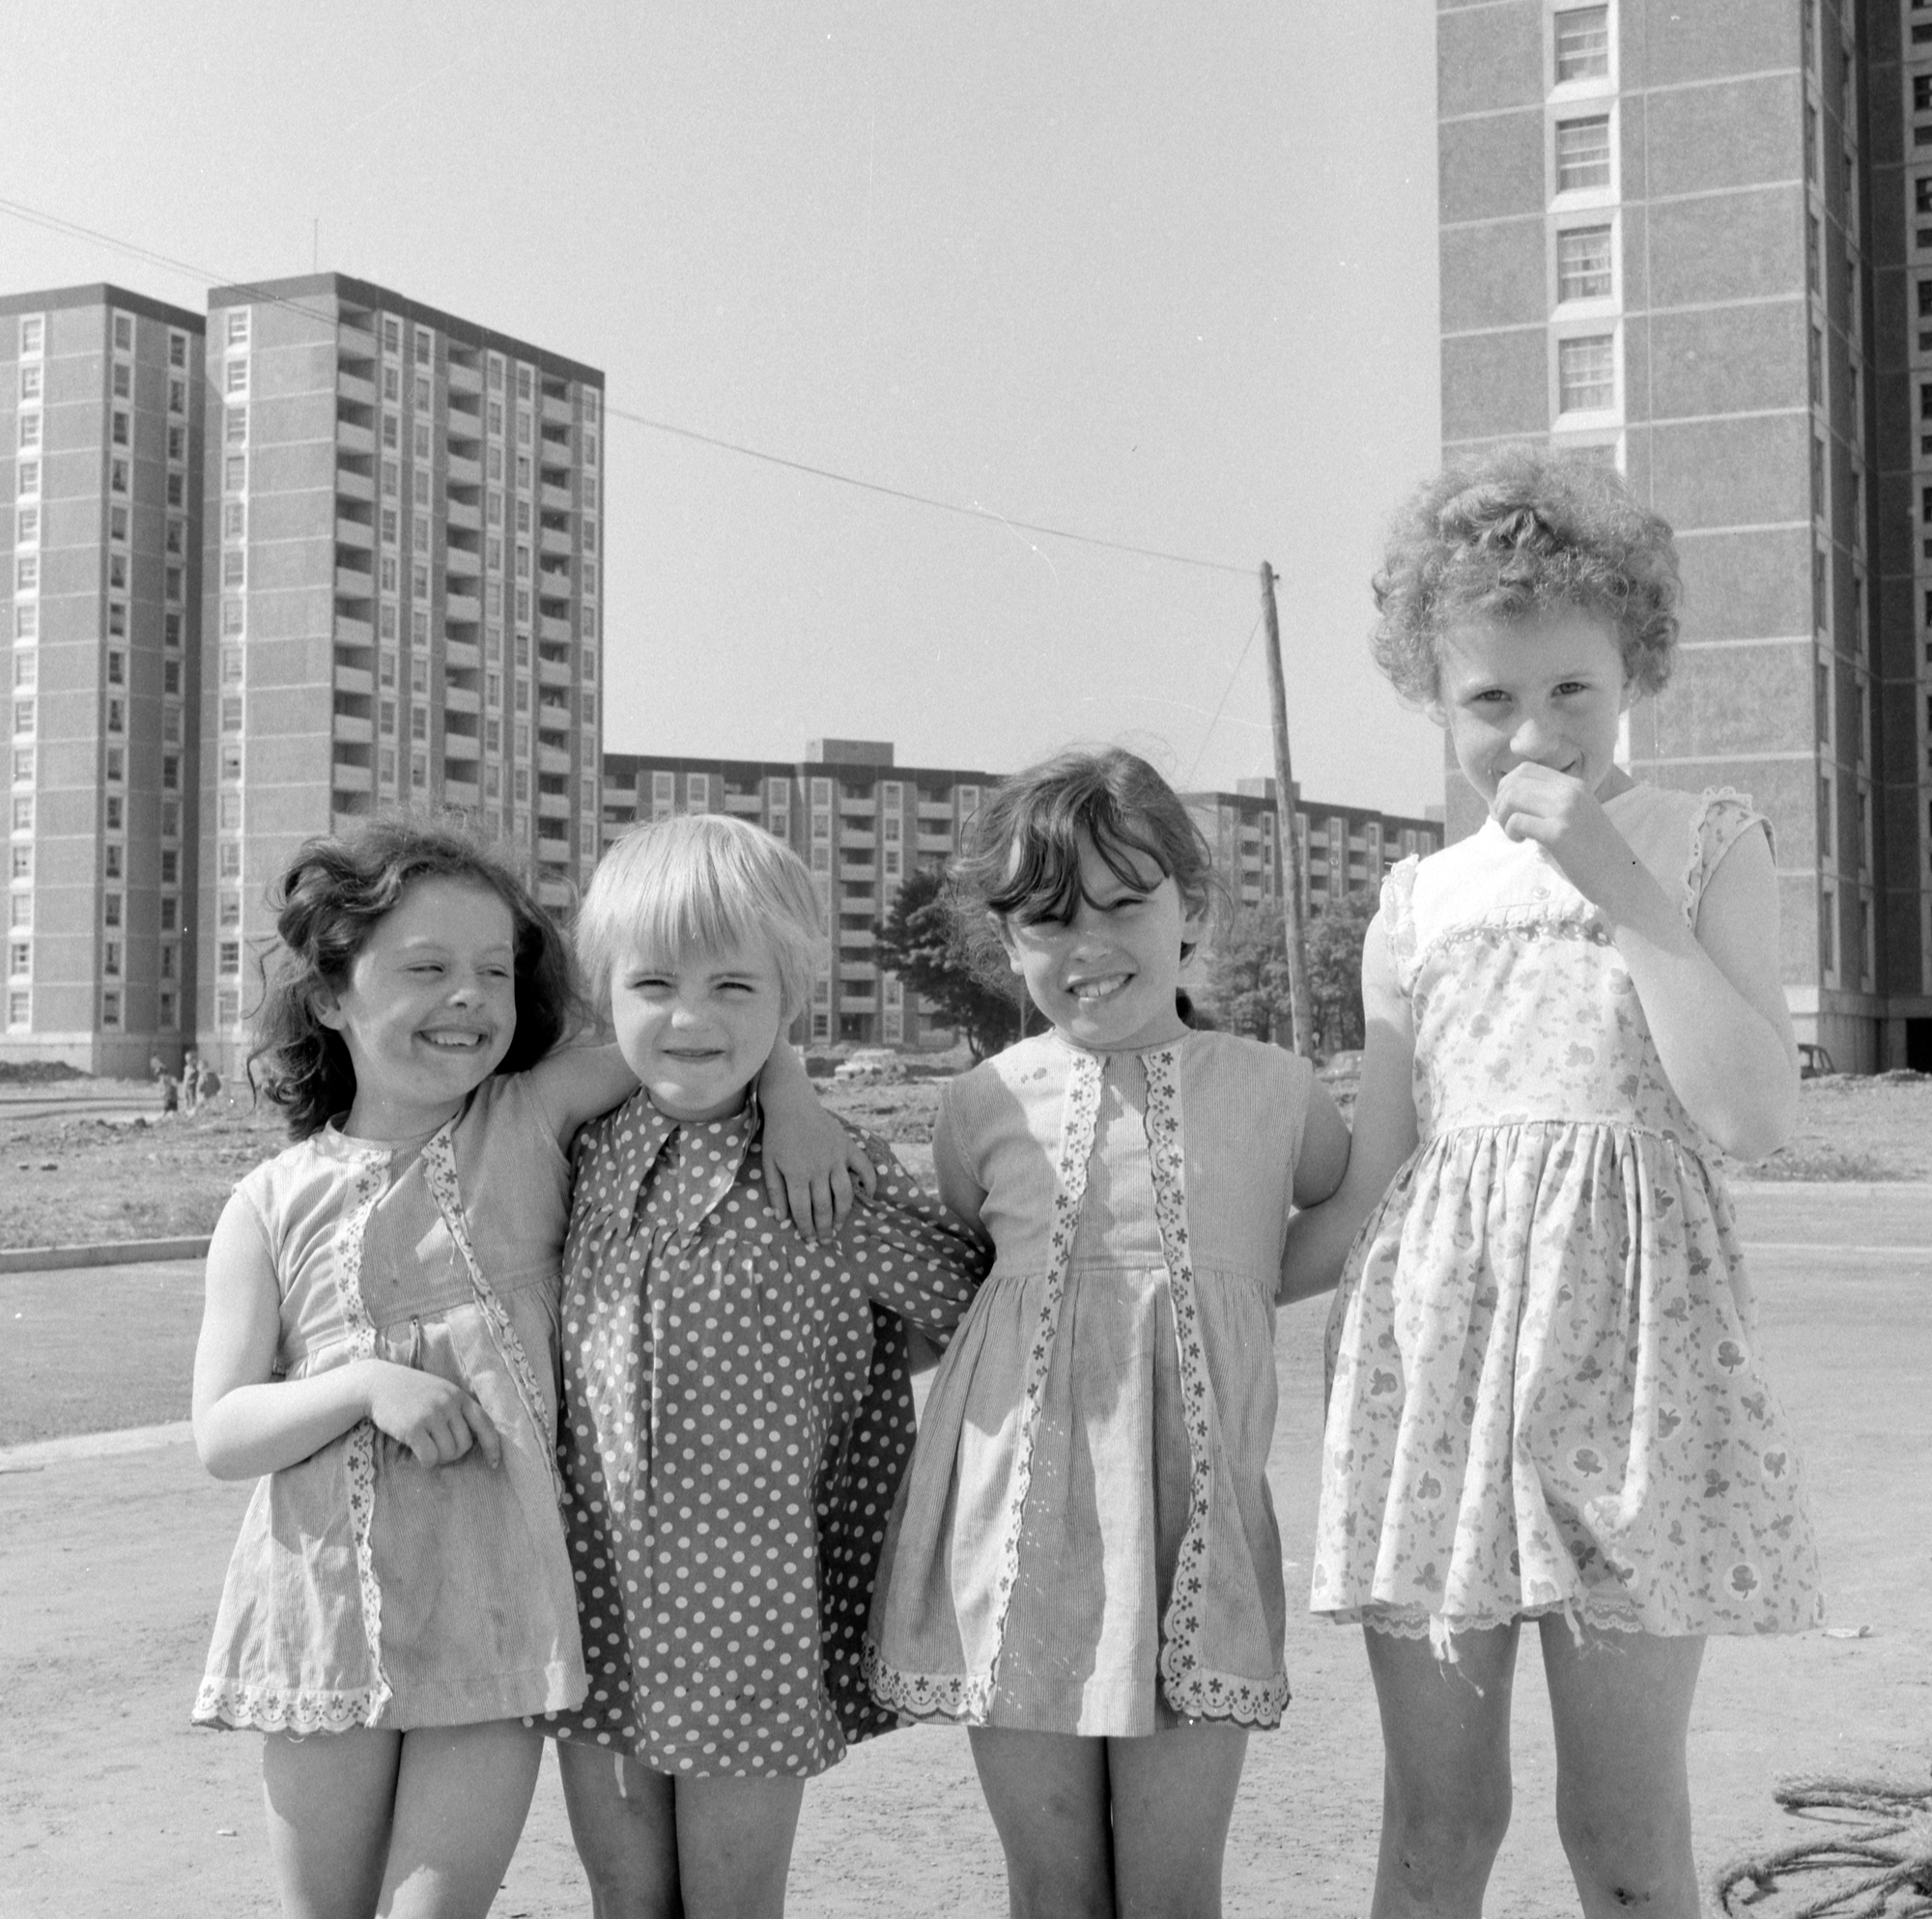 "ireland 1960s Four little girls in the shadow of the Ballymun tower blocks. This charming image of four youngsters posing for a photograph in the shadow of the Ballymun towers back in 1969 would brighten any Wednesday morning! The 'flats' had just been opened, the families had moved from the crowded and sub-standard housing of the inner city to the brave new world of the new apartments and everybody was full of hope for a bright future. This was before the blight of drugs and addiction, before the ""troubles"" and the escalation of violence that came with them and hope sprang eternal! I wonder are they still in Ballymun and has life treated them kindly? Photographer: Elinor Wiltshire Date: 1969"